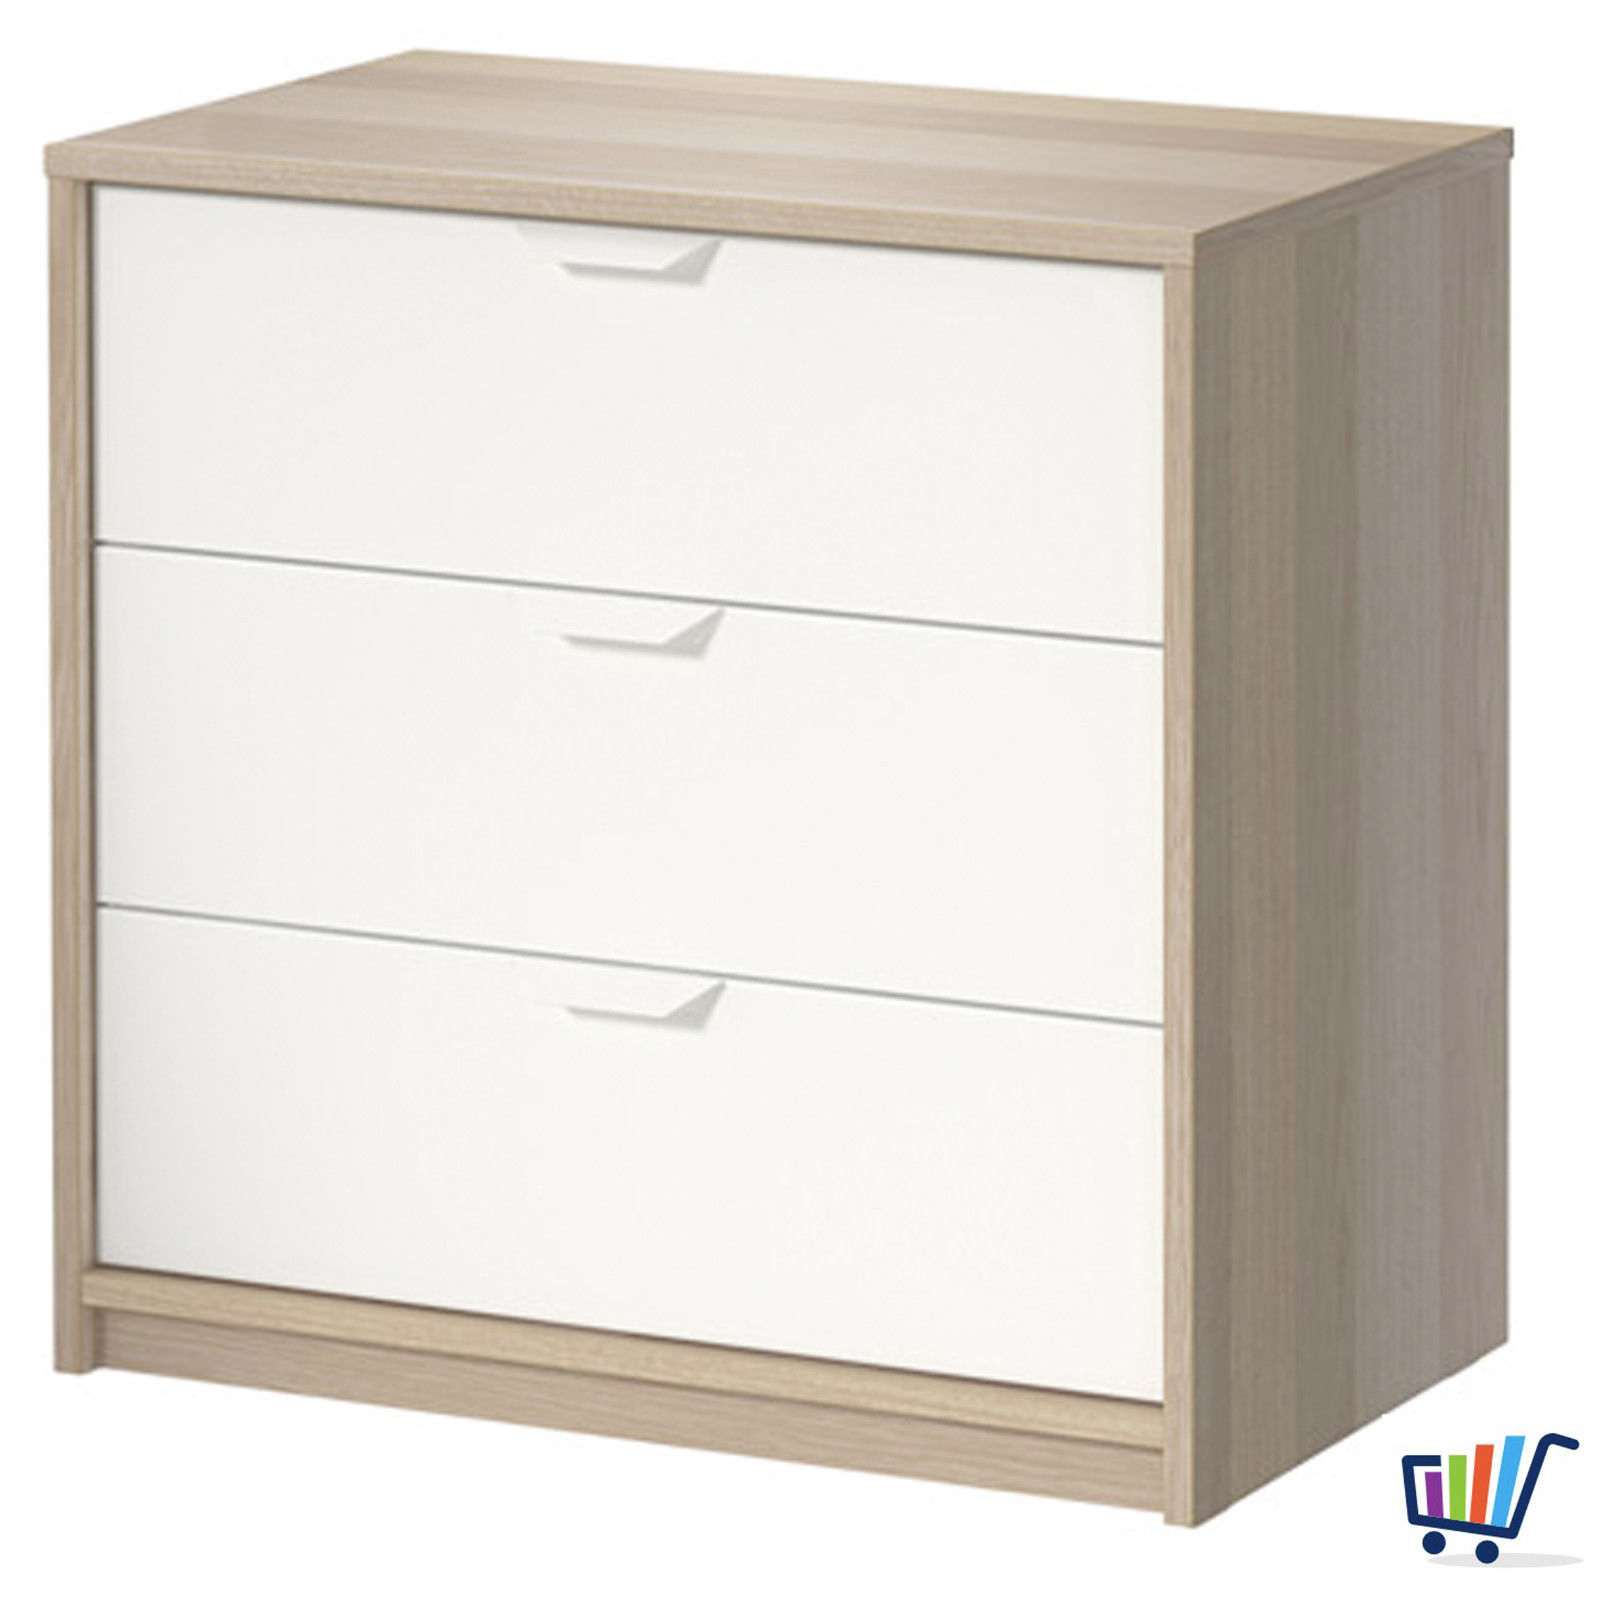 ikea askvoll wei kommode mit 3 schubladen schrank kleiderschrank 70 68 cm neu traumfabrik xxl. Black Bedroom Furniture Sets. Home Design Ideas